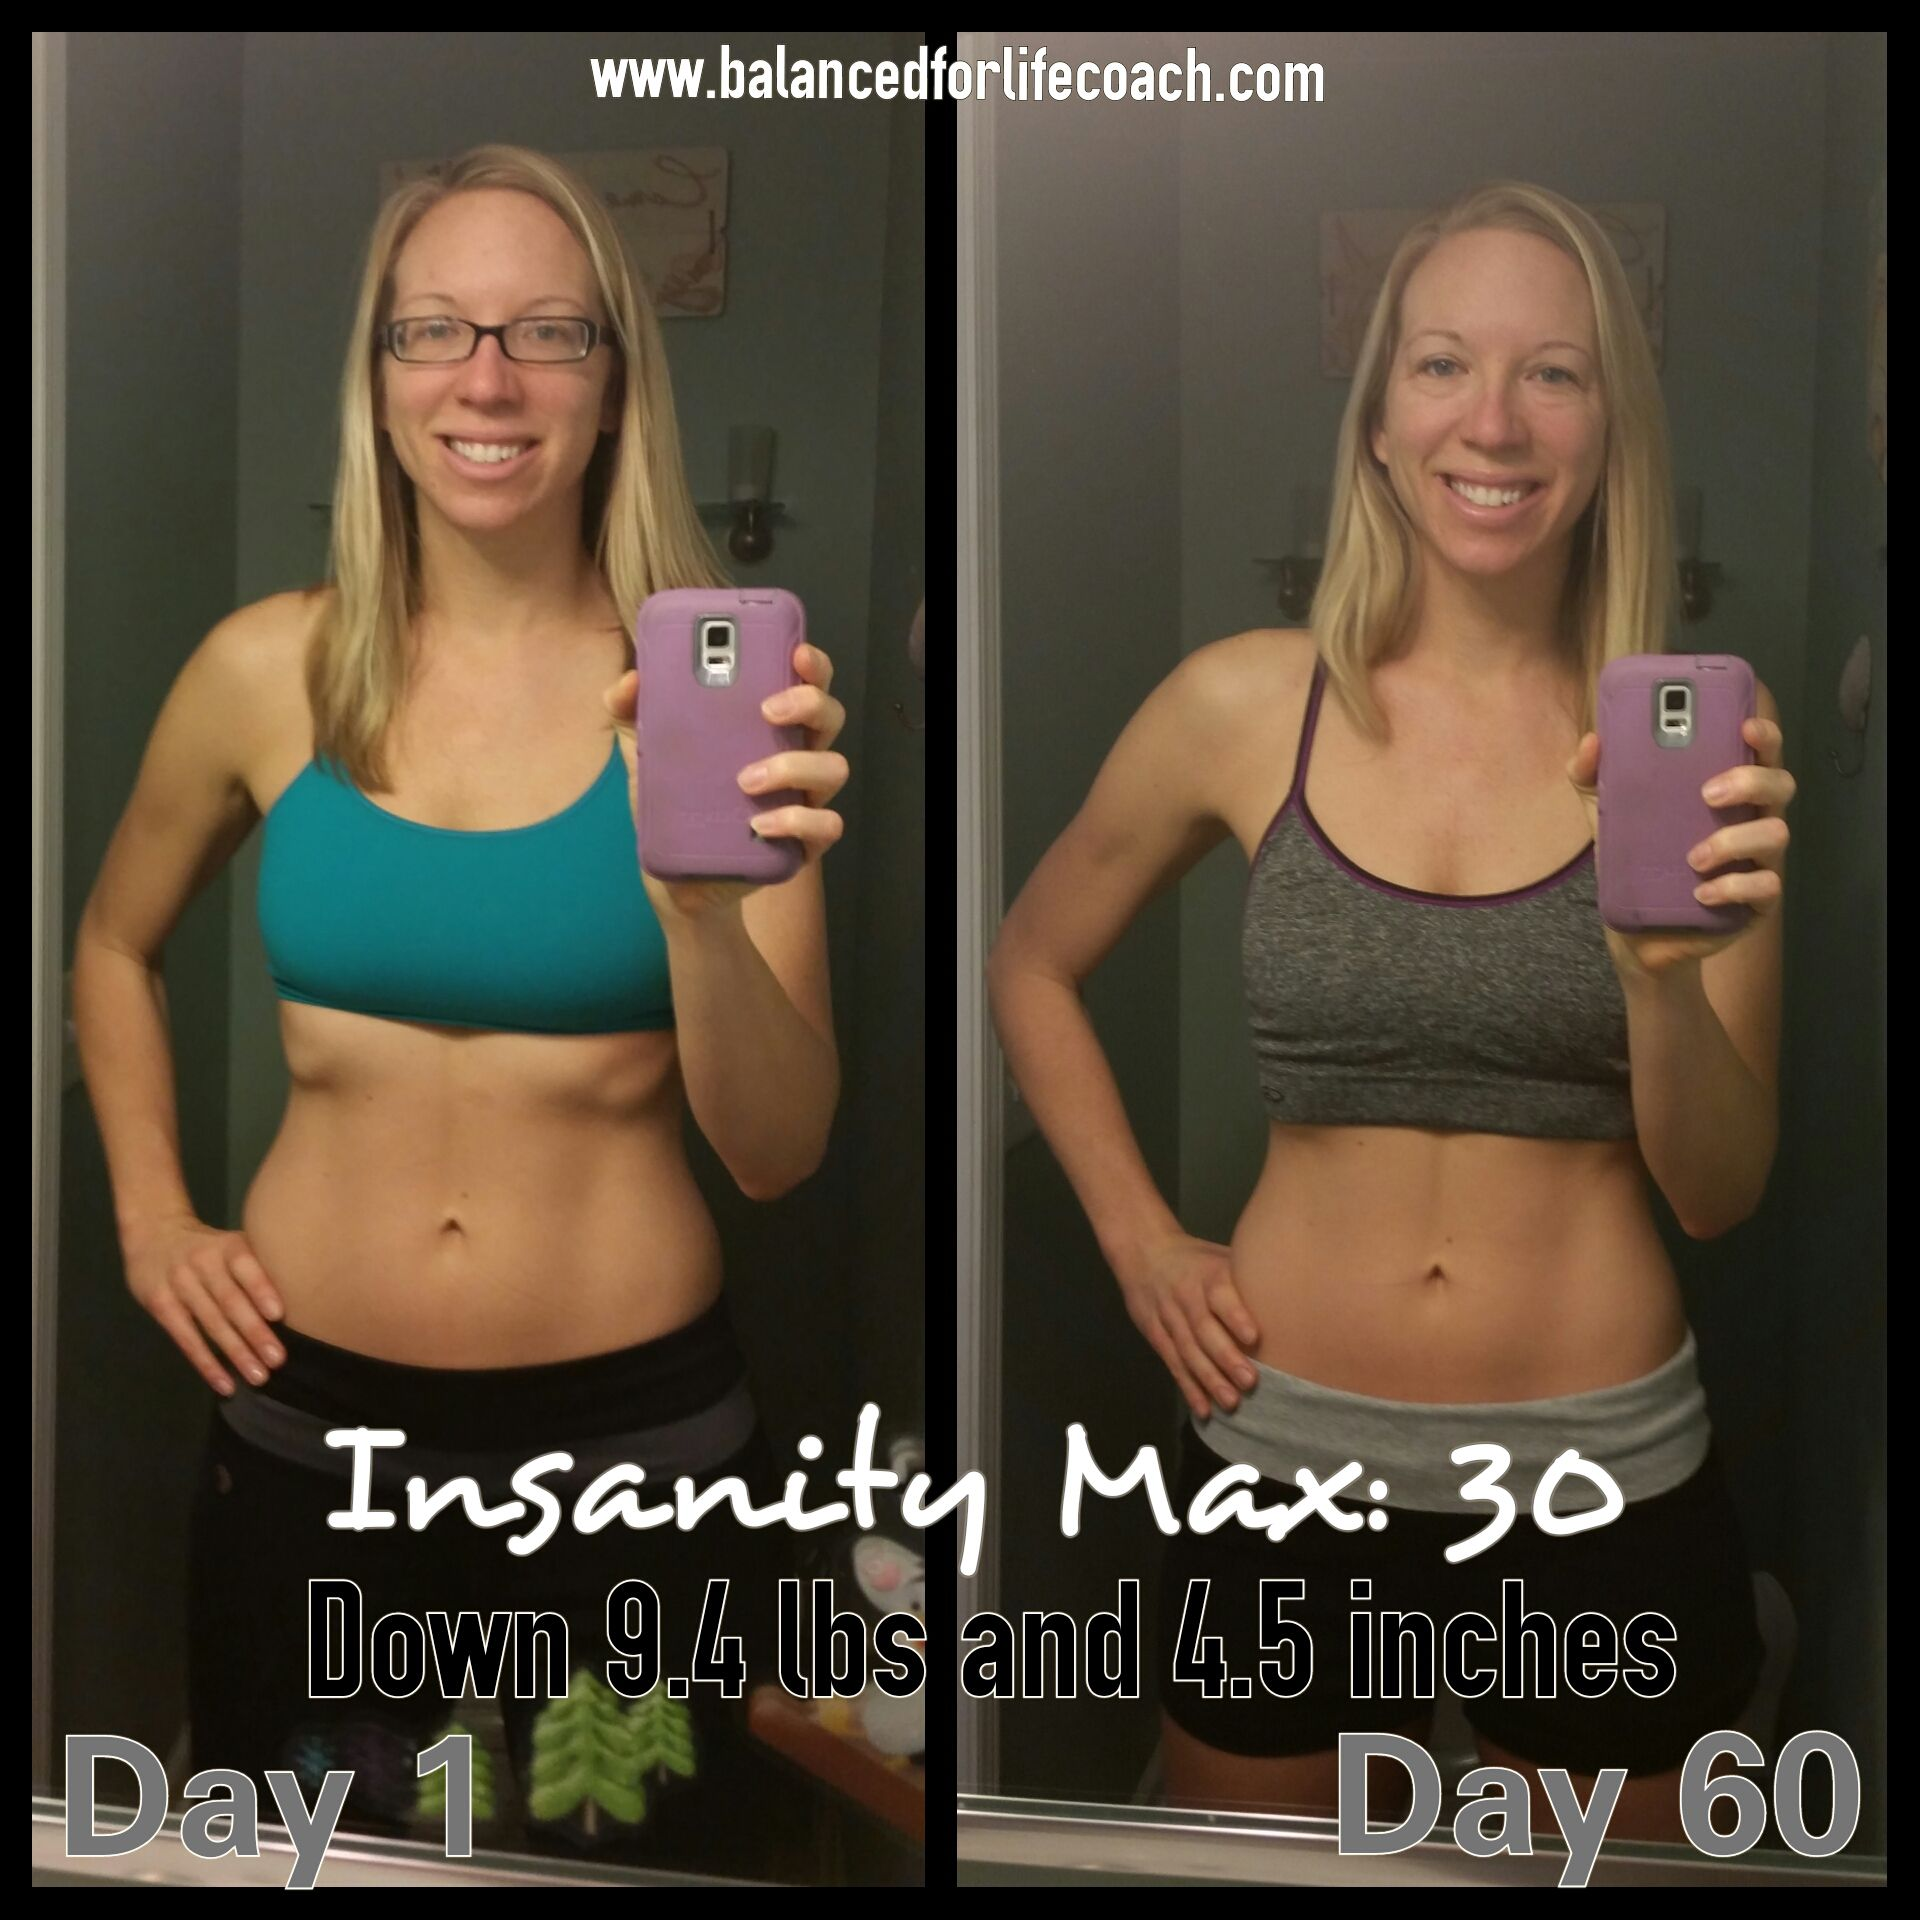 Insanity Max: 30 Results - All Modifications #InsanityMax30